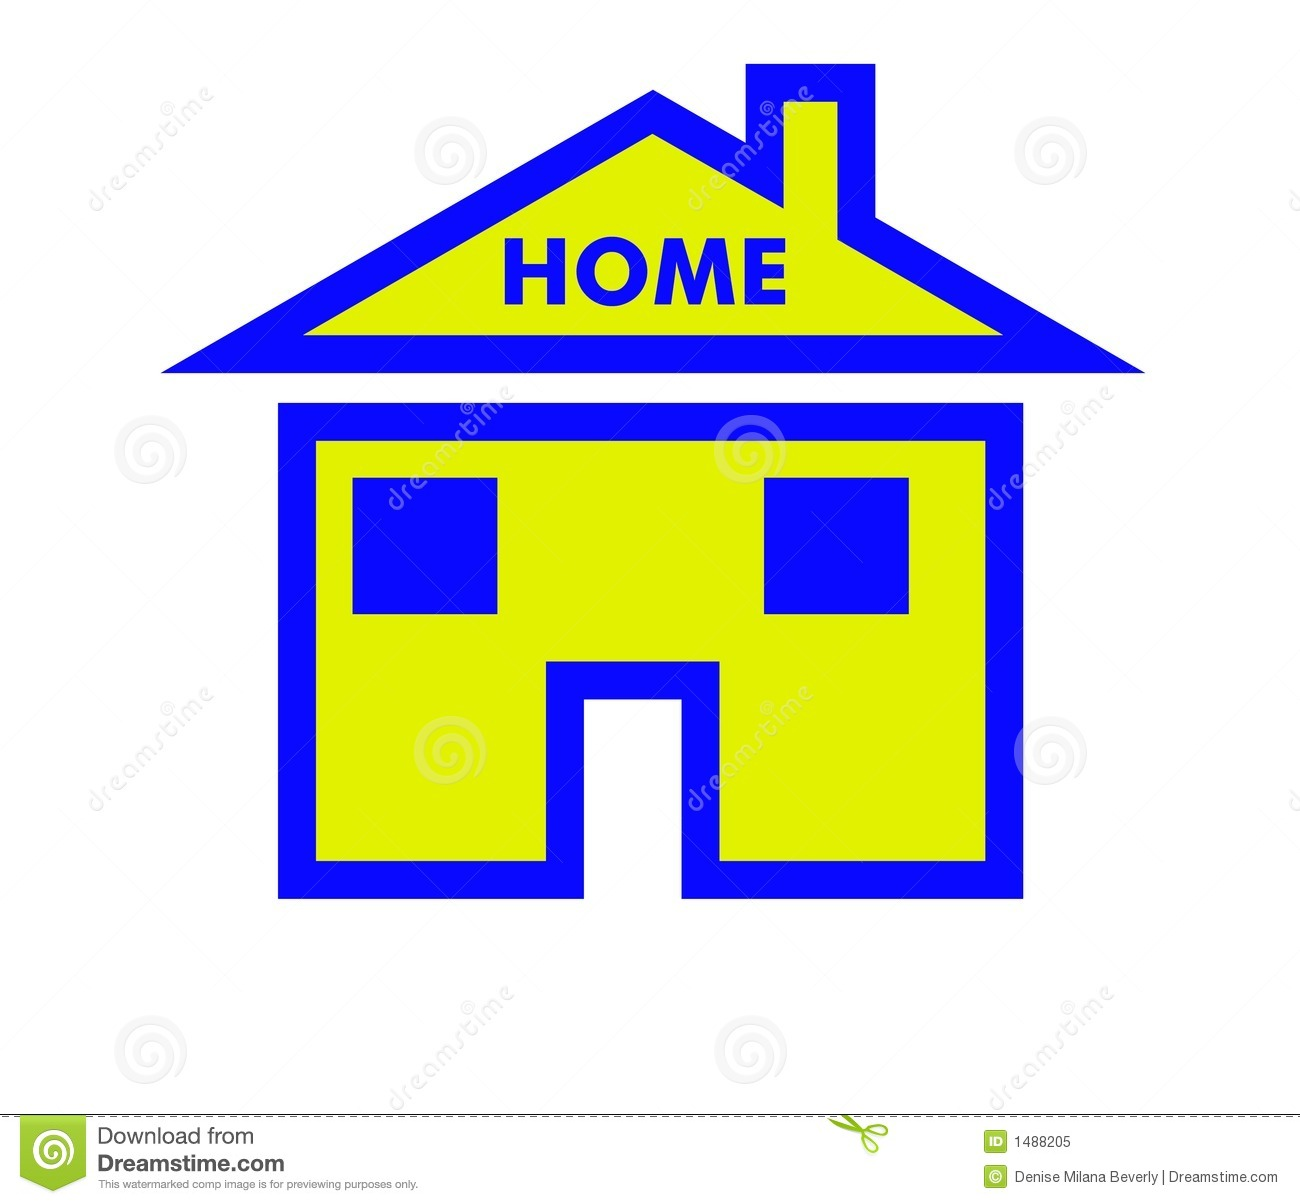 Home Symbol For Computer Program Or Website Royalty Free